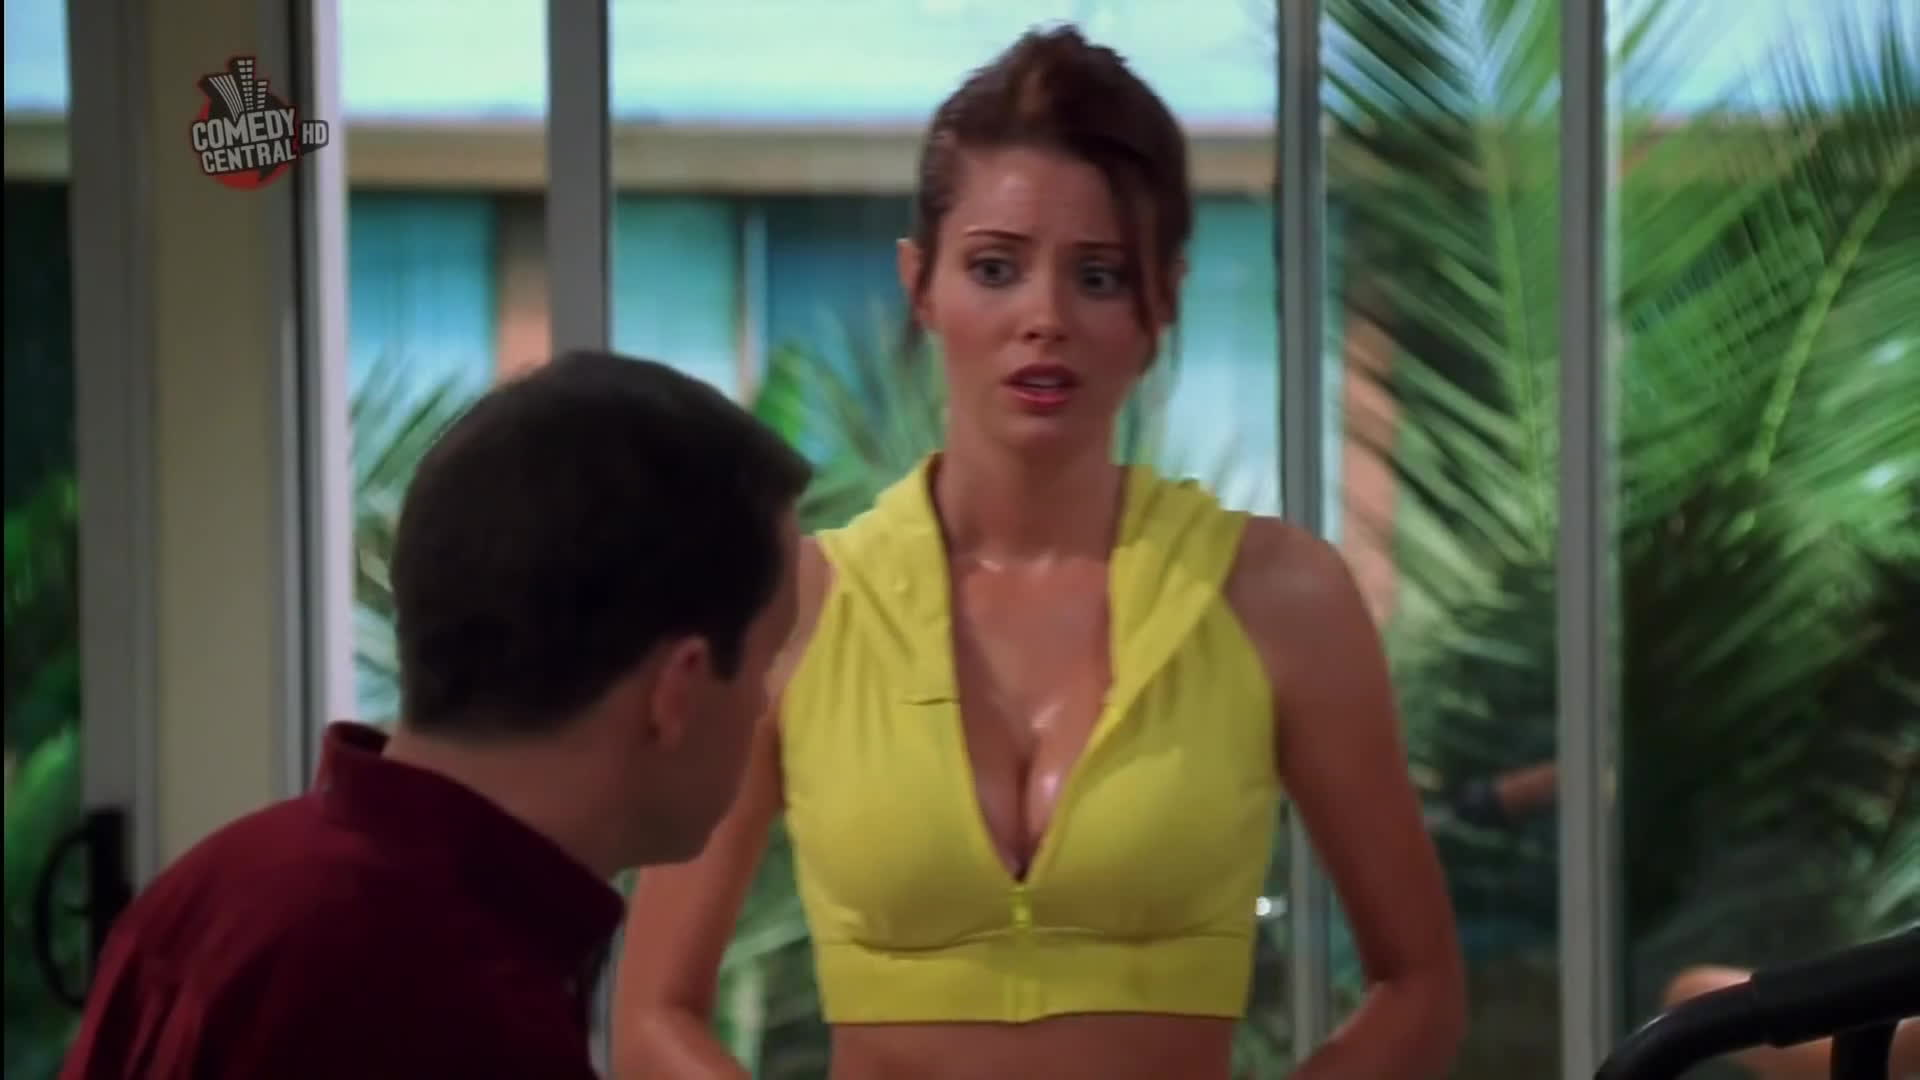 Aly Michalka Two And A Half Men Gif april bowlby gifs search | search & share on homdor